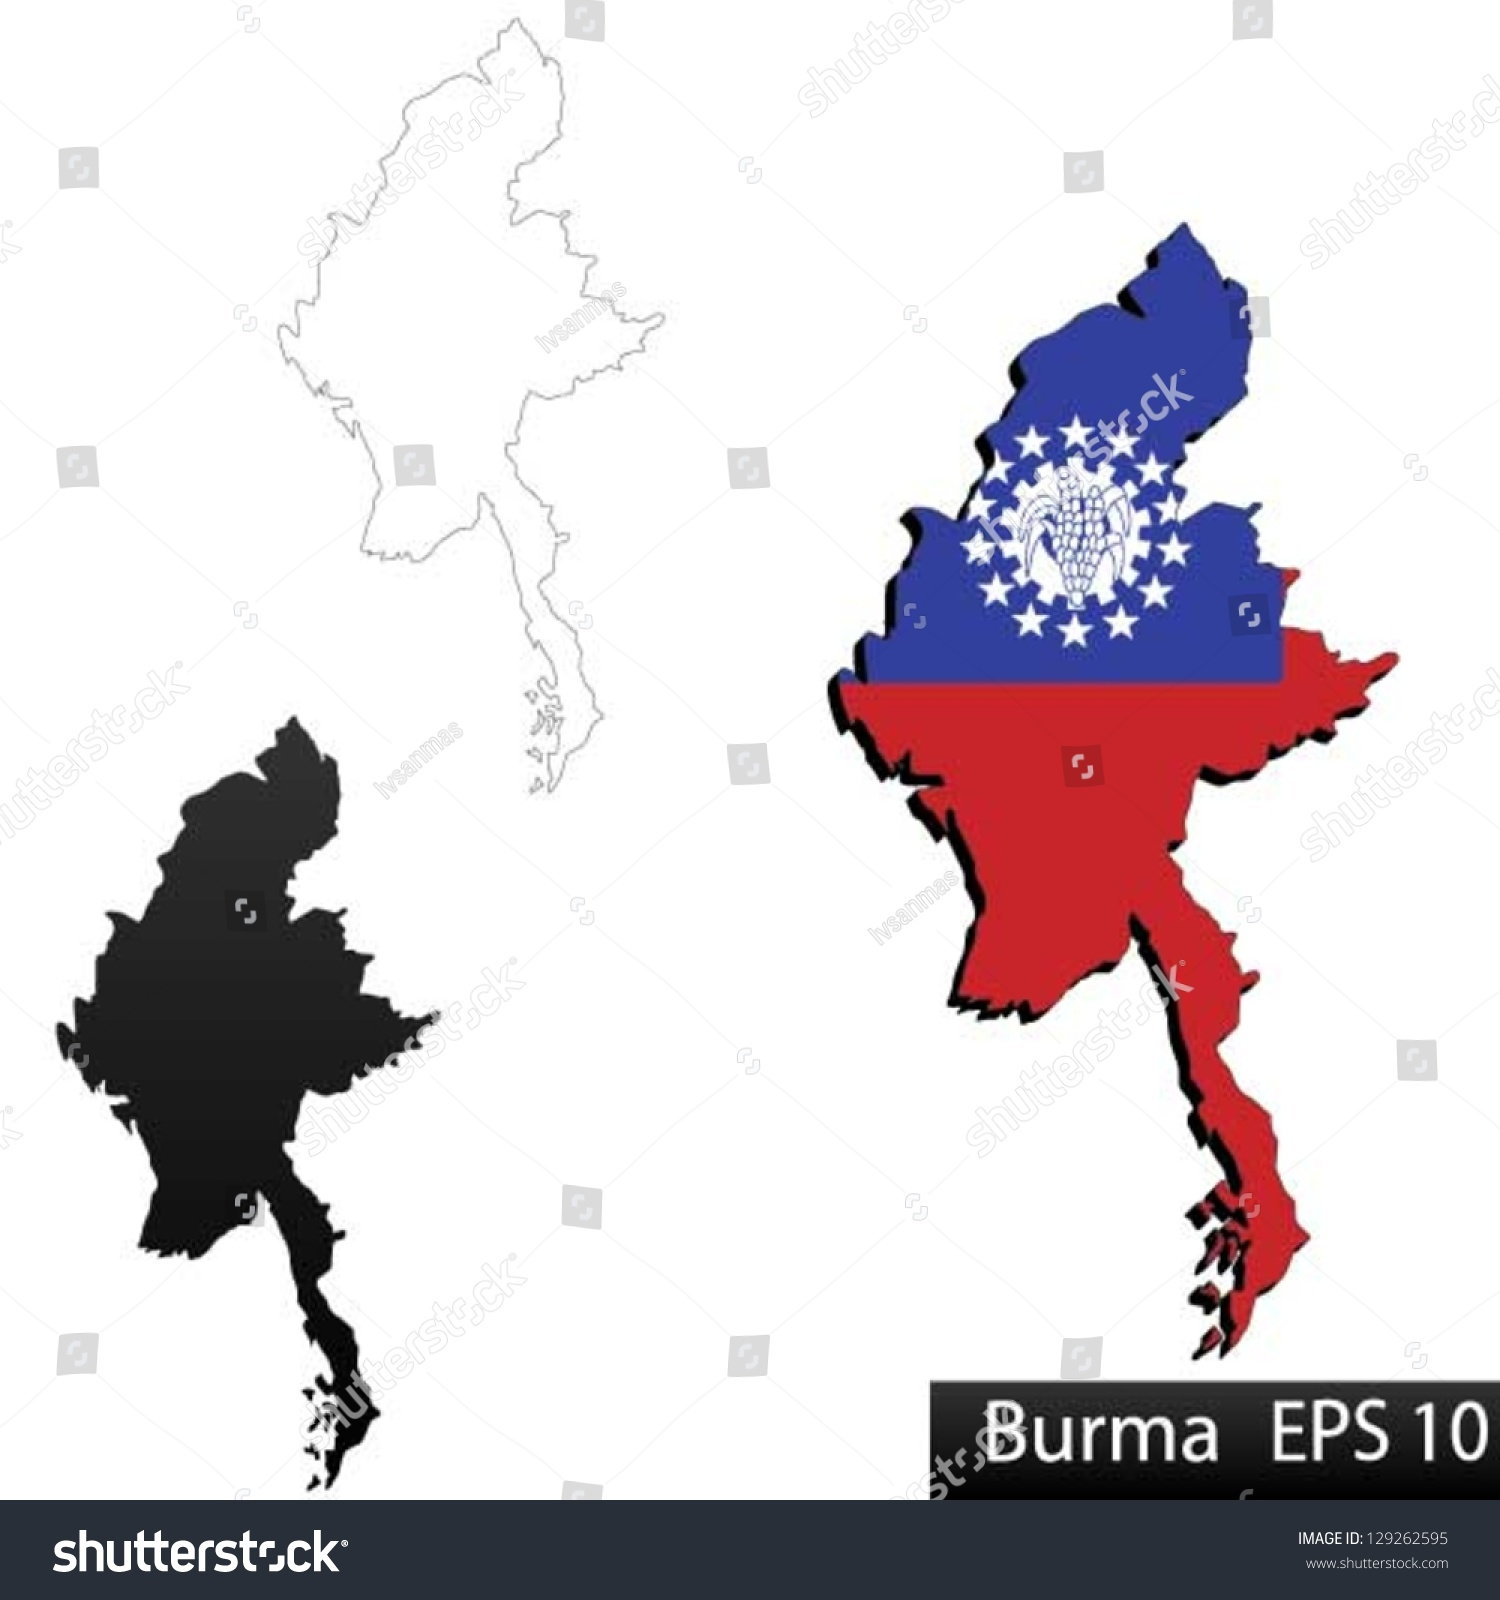 Maps Of Burma(Myanmar), 3 Dimensional With Flag Clipped Inside Borders,And Shadow, And ...